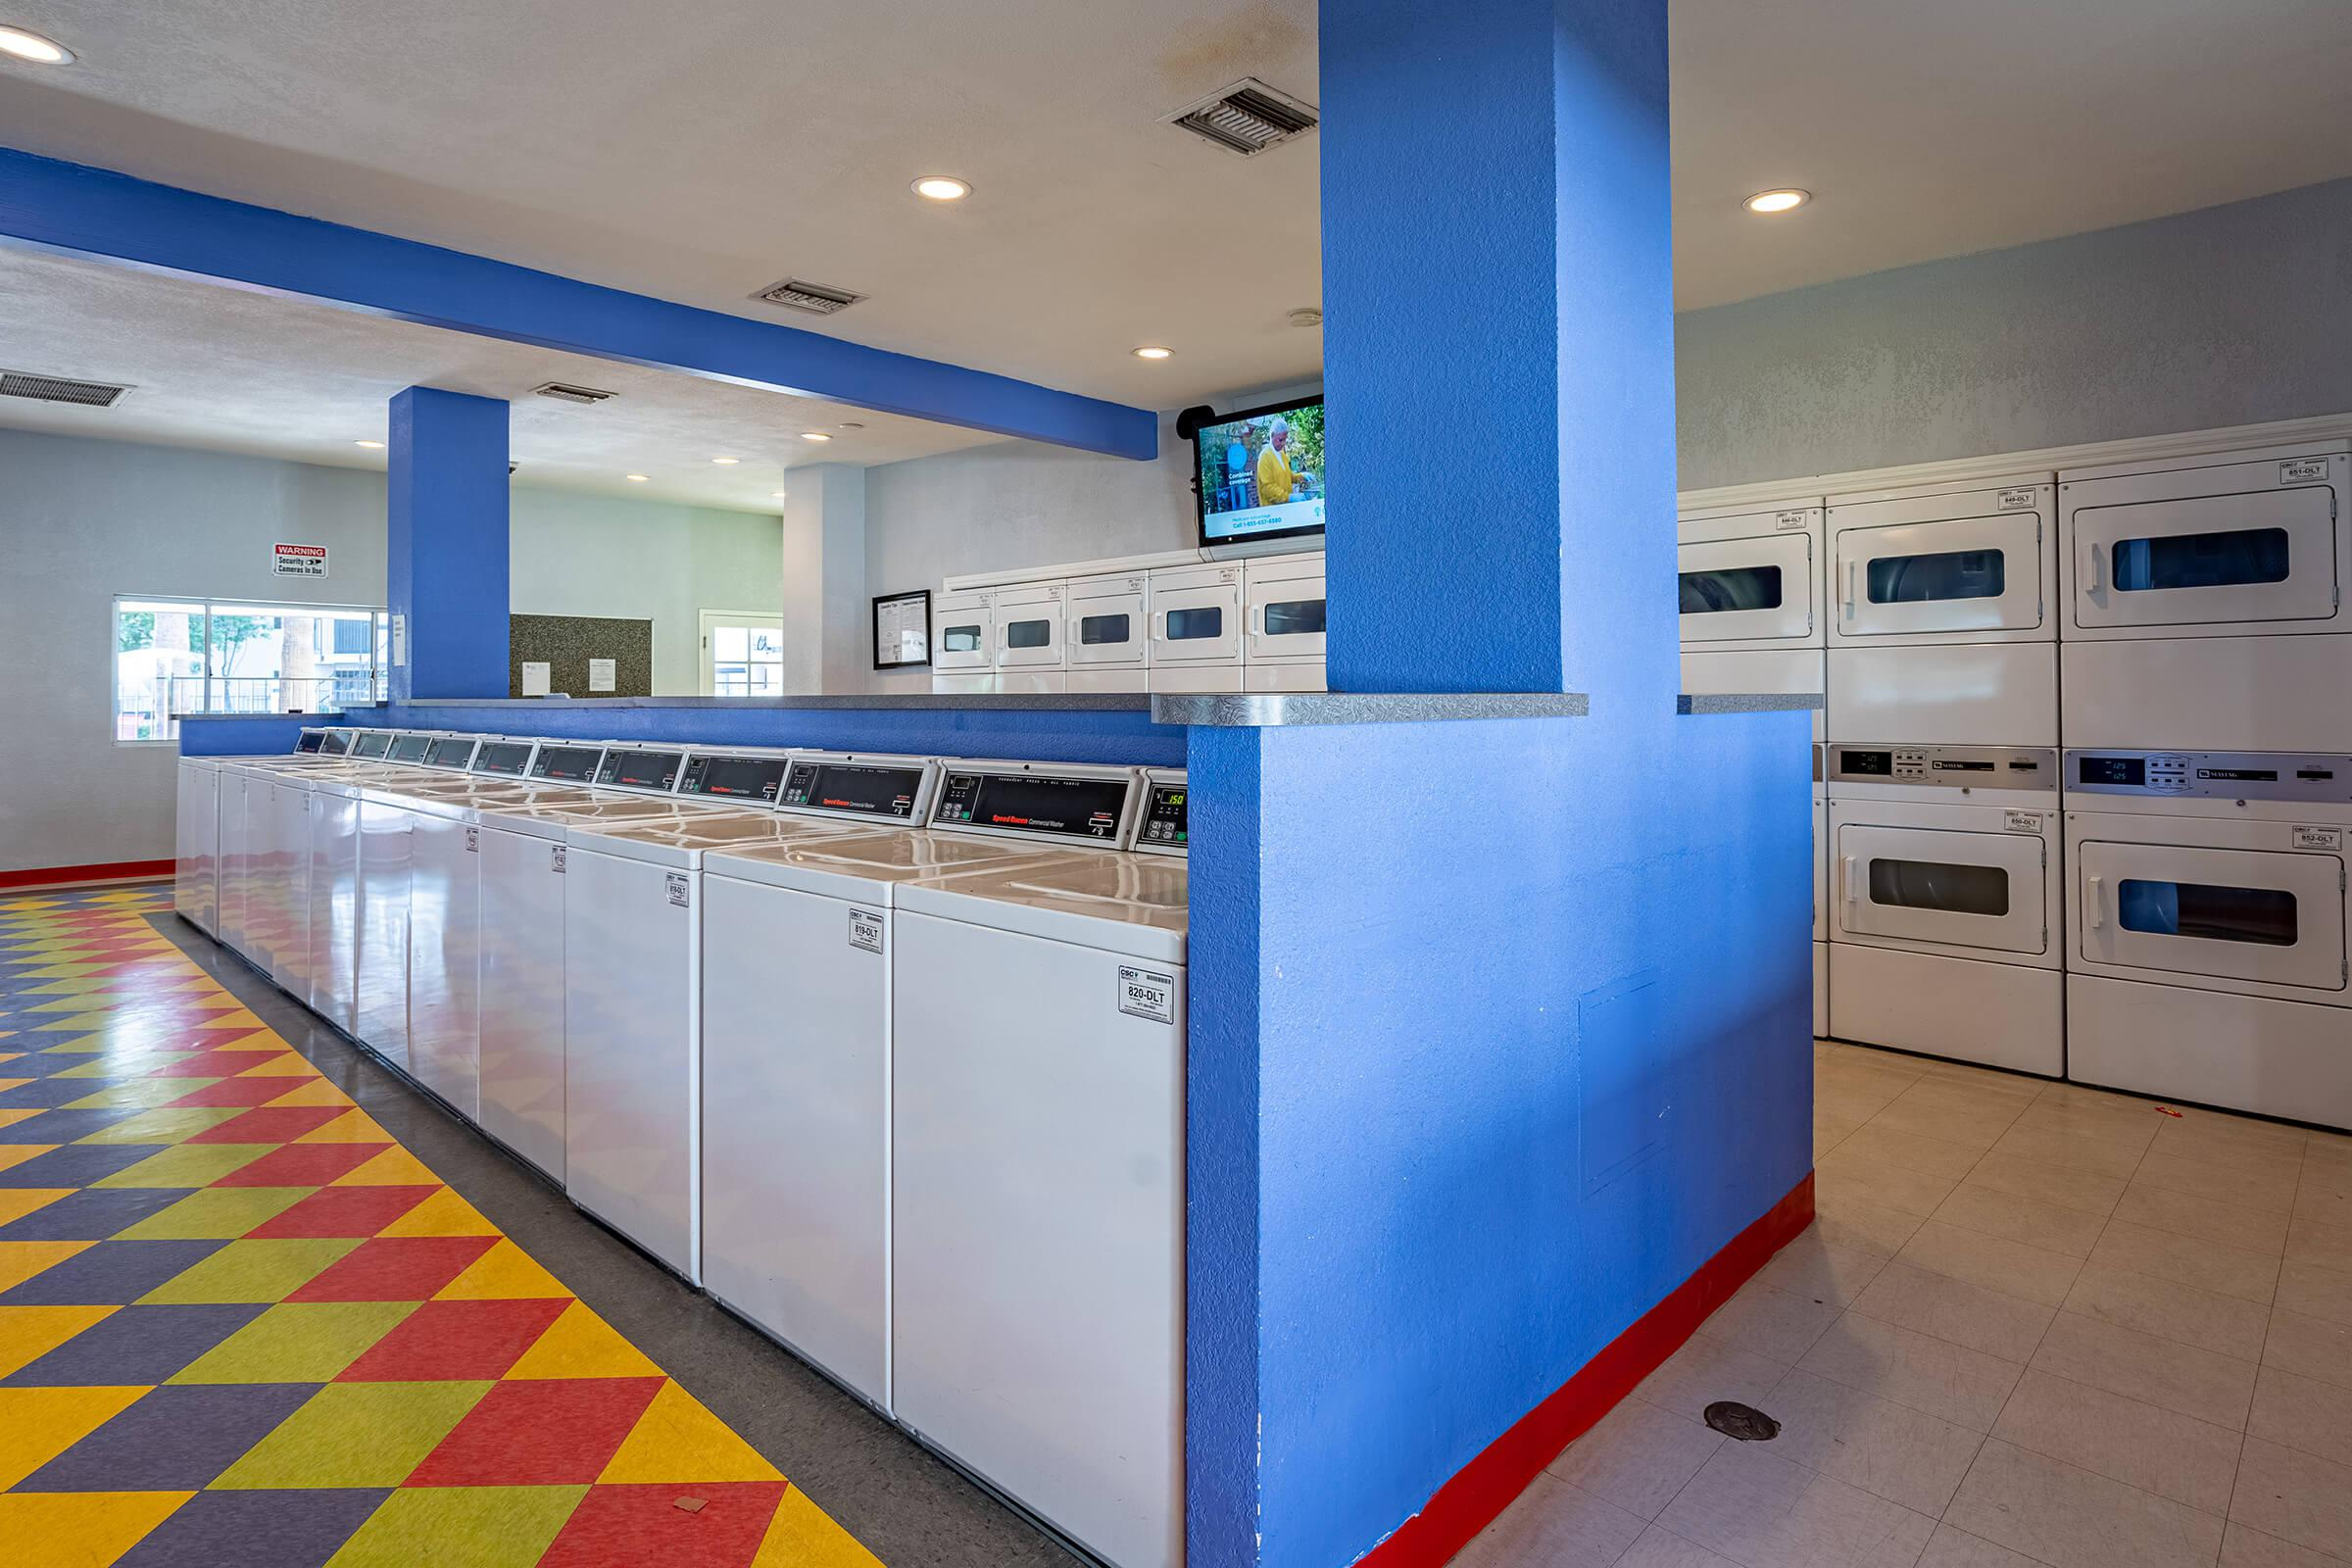 COLORFUL AND CLEAN LAUNDRY FACILITY